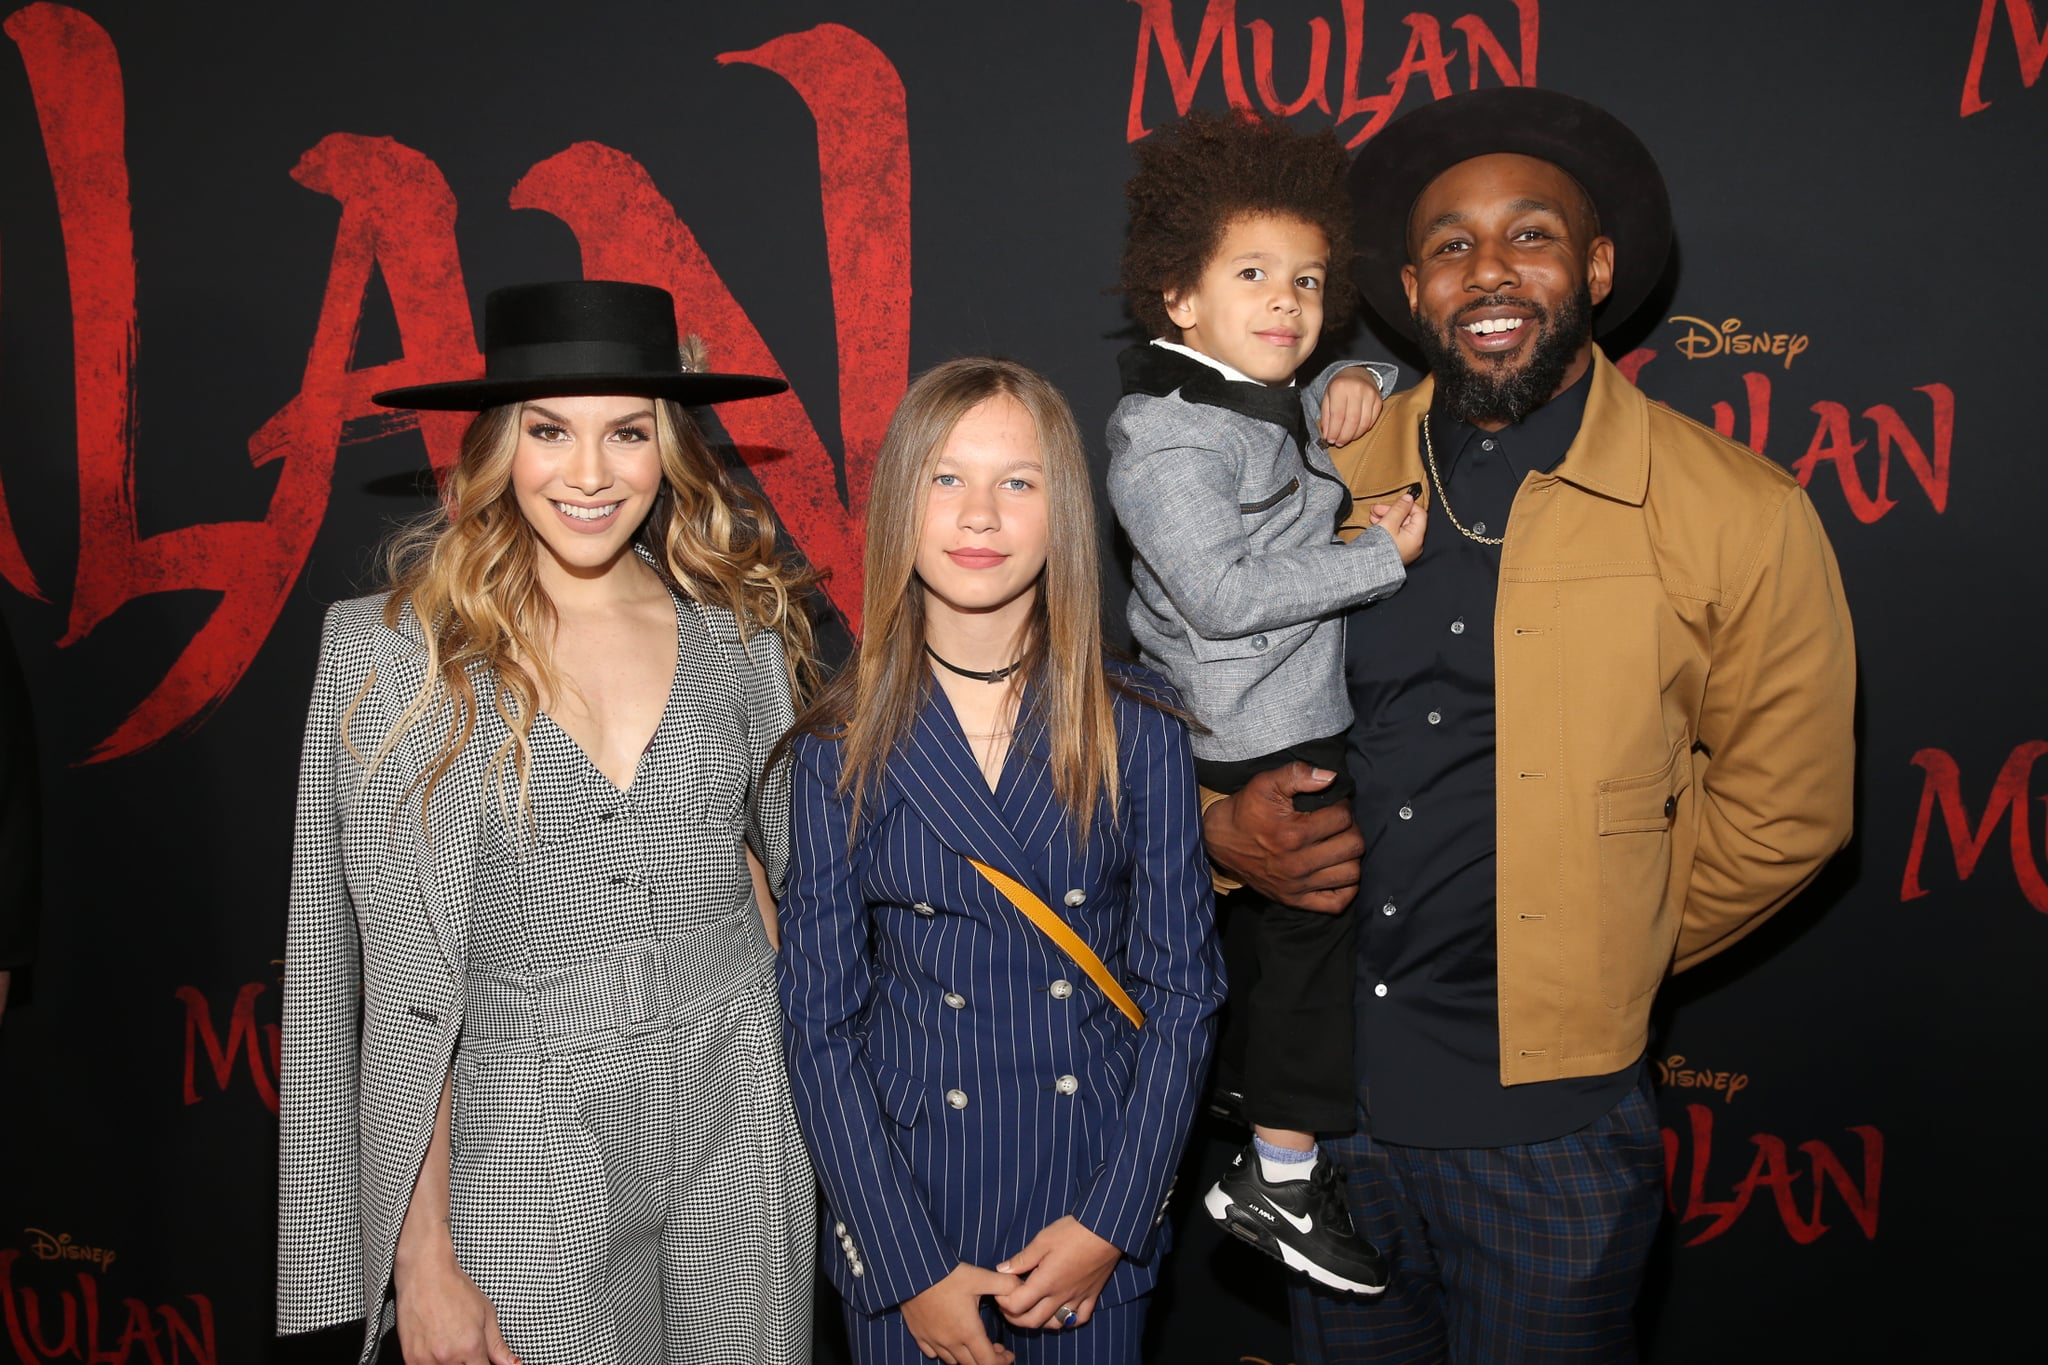 HOLLYWOOD, CALIFORNIA - MARCH 09: (L-R) Allison Holker, Weslie Fowler, Maddox Laurel Boss, and Stephen Boss attend the World Premiere of Disney's 'MULAN' at the Dolby Theatre on March 09, 2020 in Hollywood, California. (Photo by Jesse Grant/Getty Images for Disney)